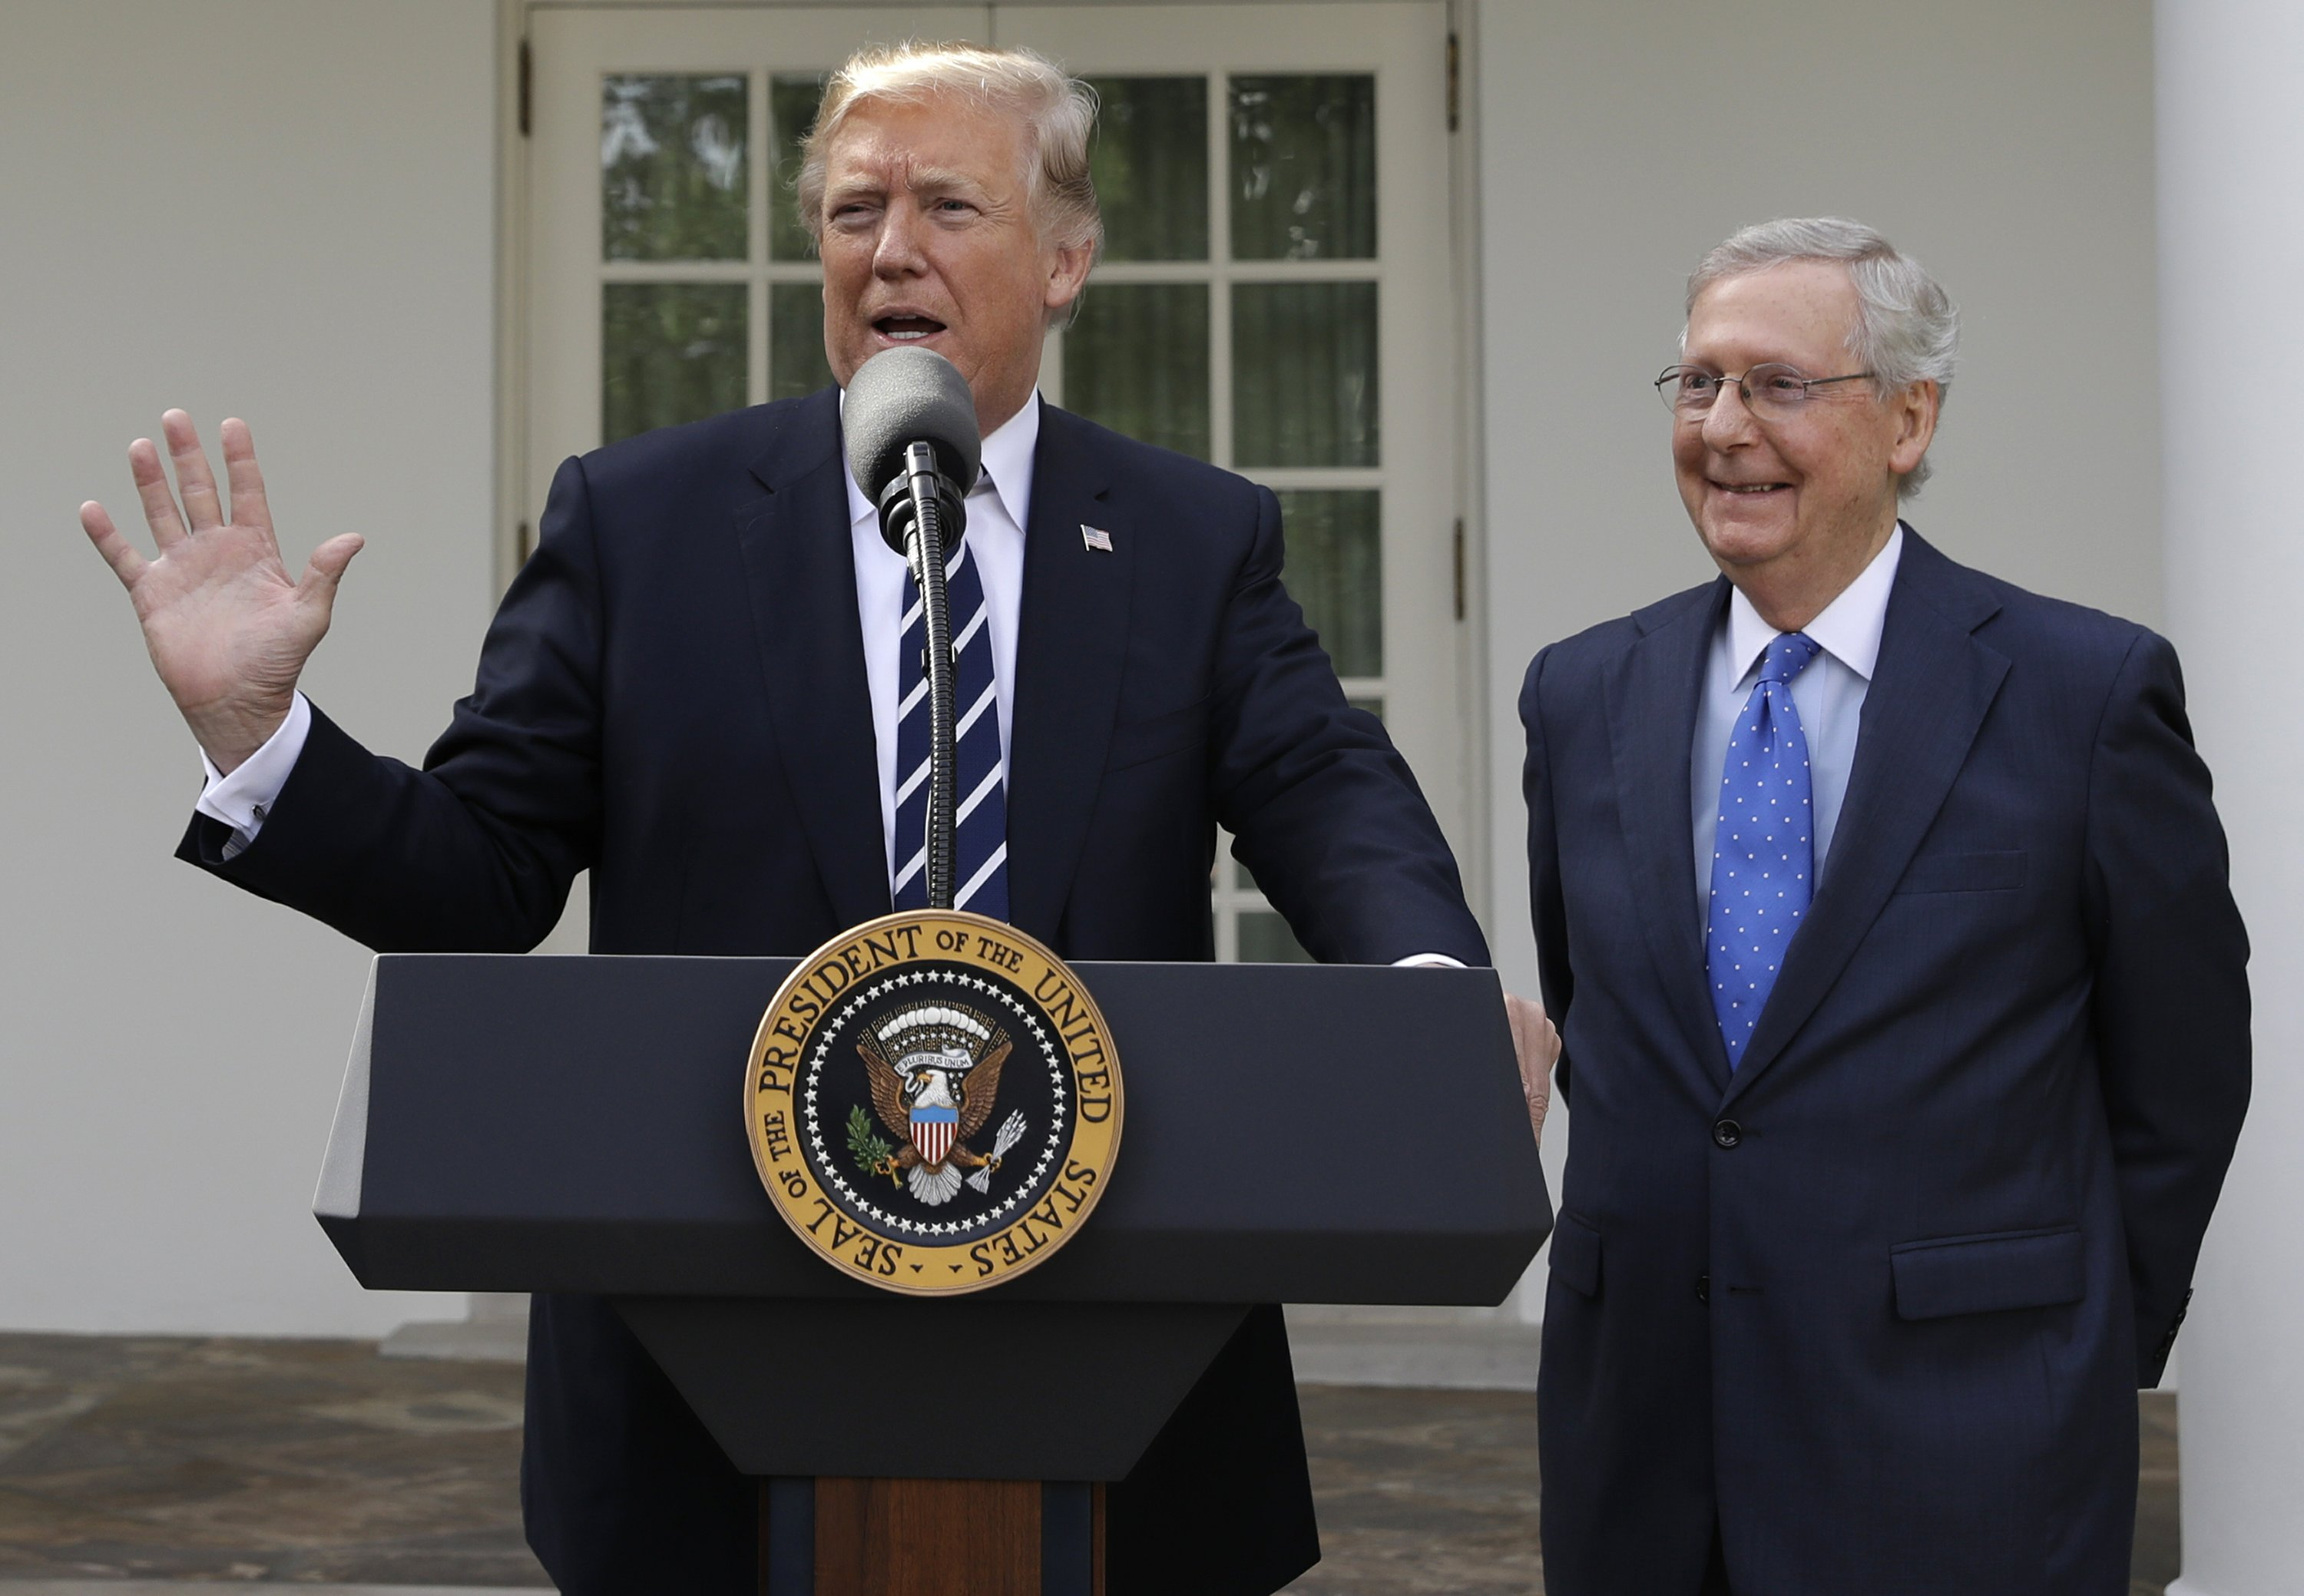 Trump, McConnell: No matter what people say, we're friends